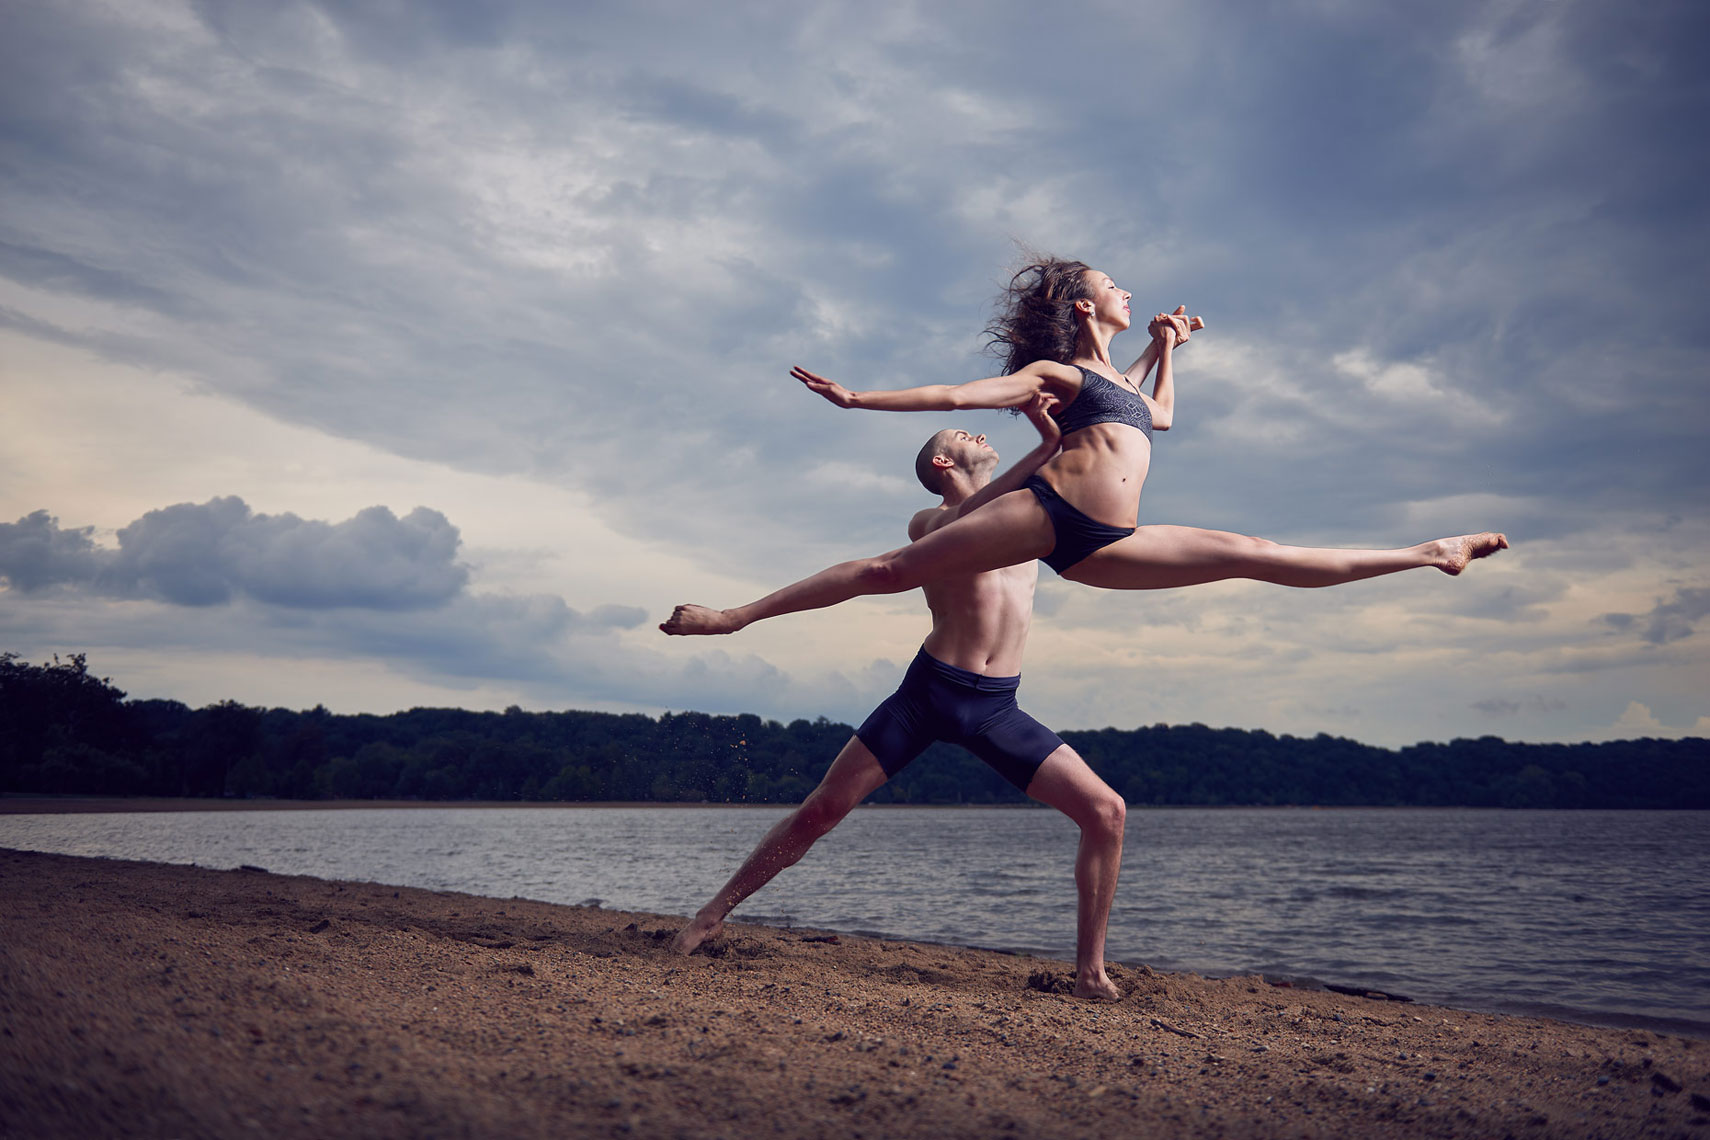 Ballet couple shot next to Creve Coeur Lake in St. Louis  with stormy sky.